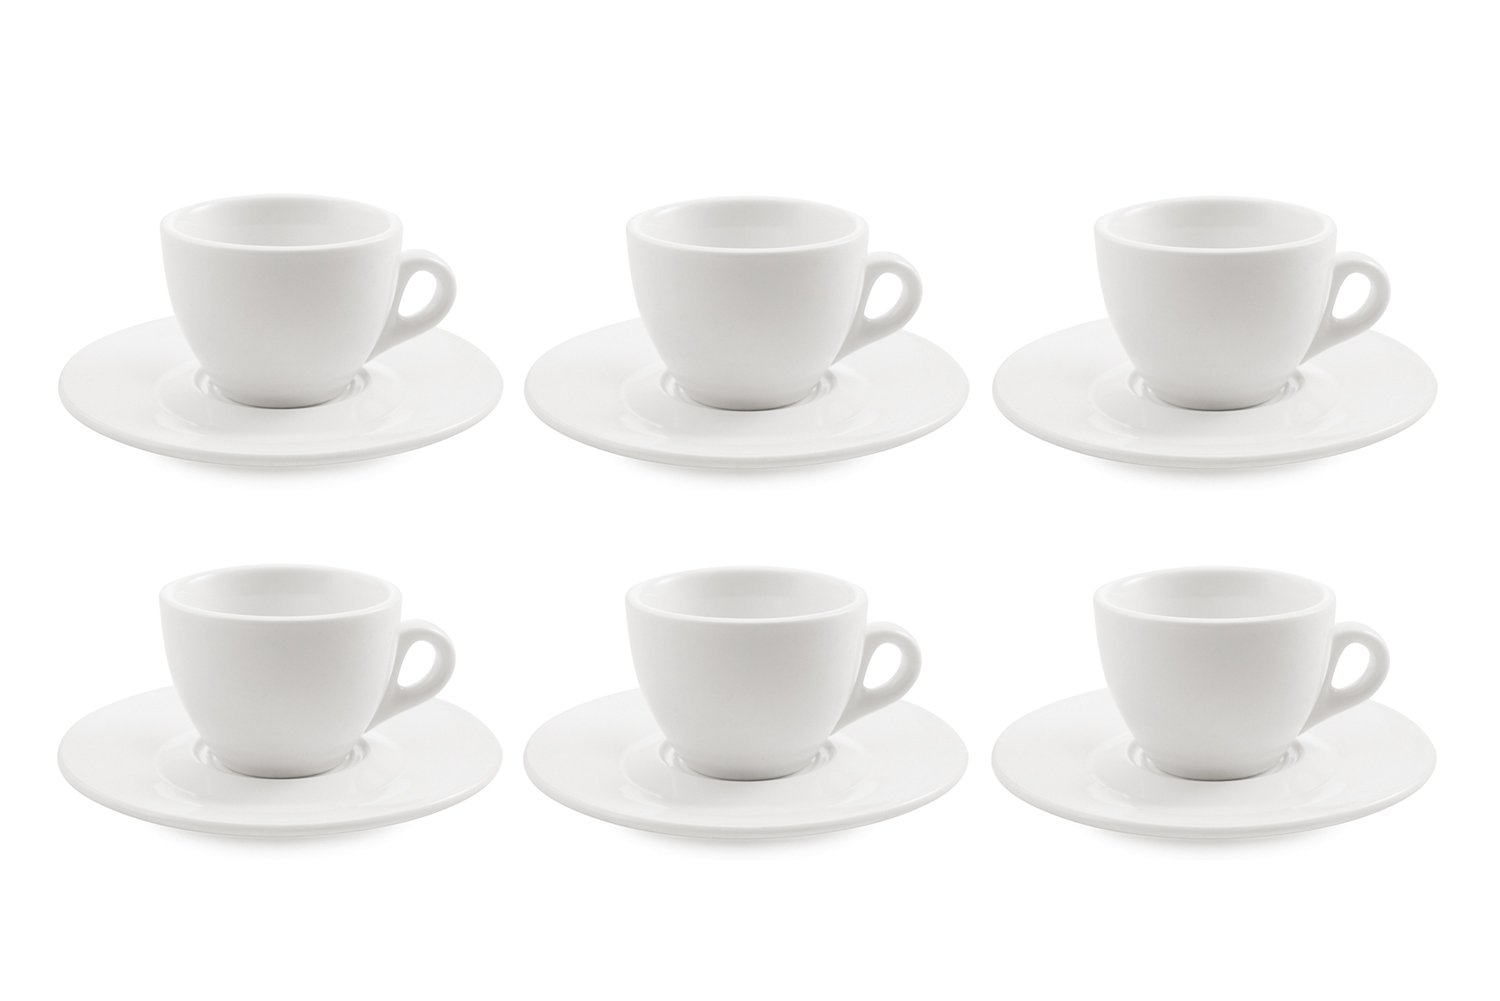 Galileo Casa White Set of 6 Tea Cups with Saucers in Porcelain 2177397